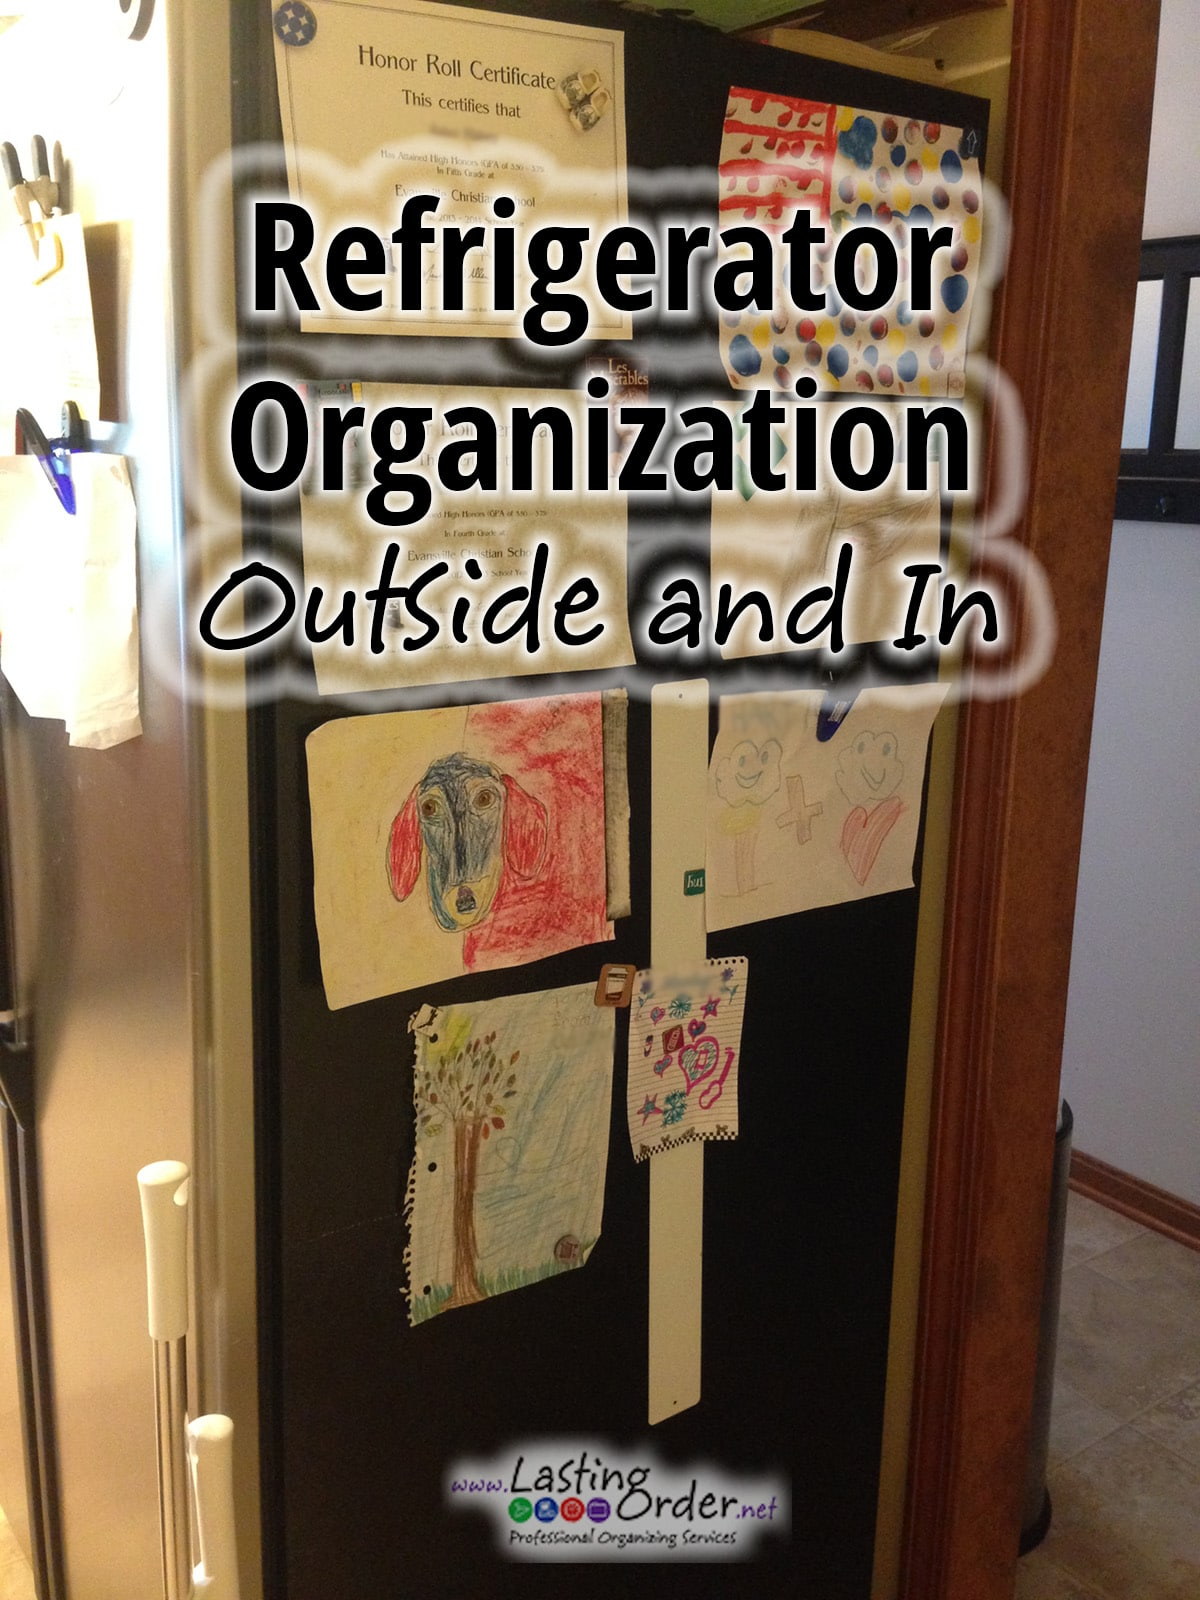 Refrigerator Organization: Outside and In